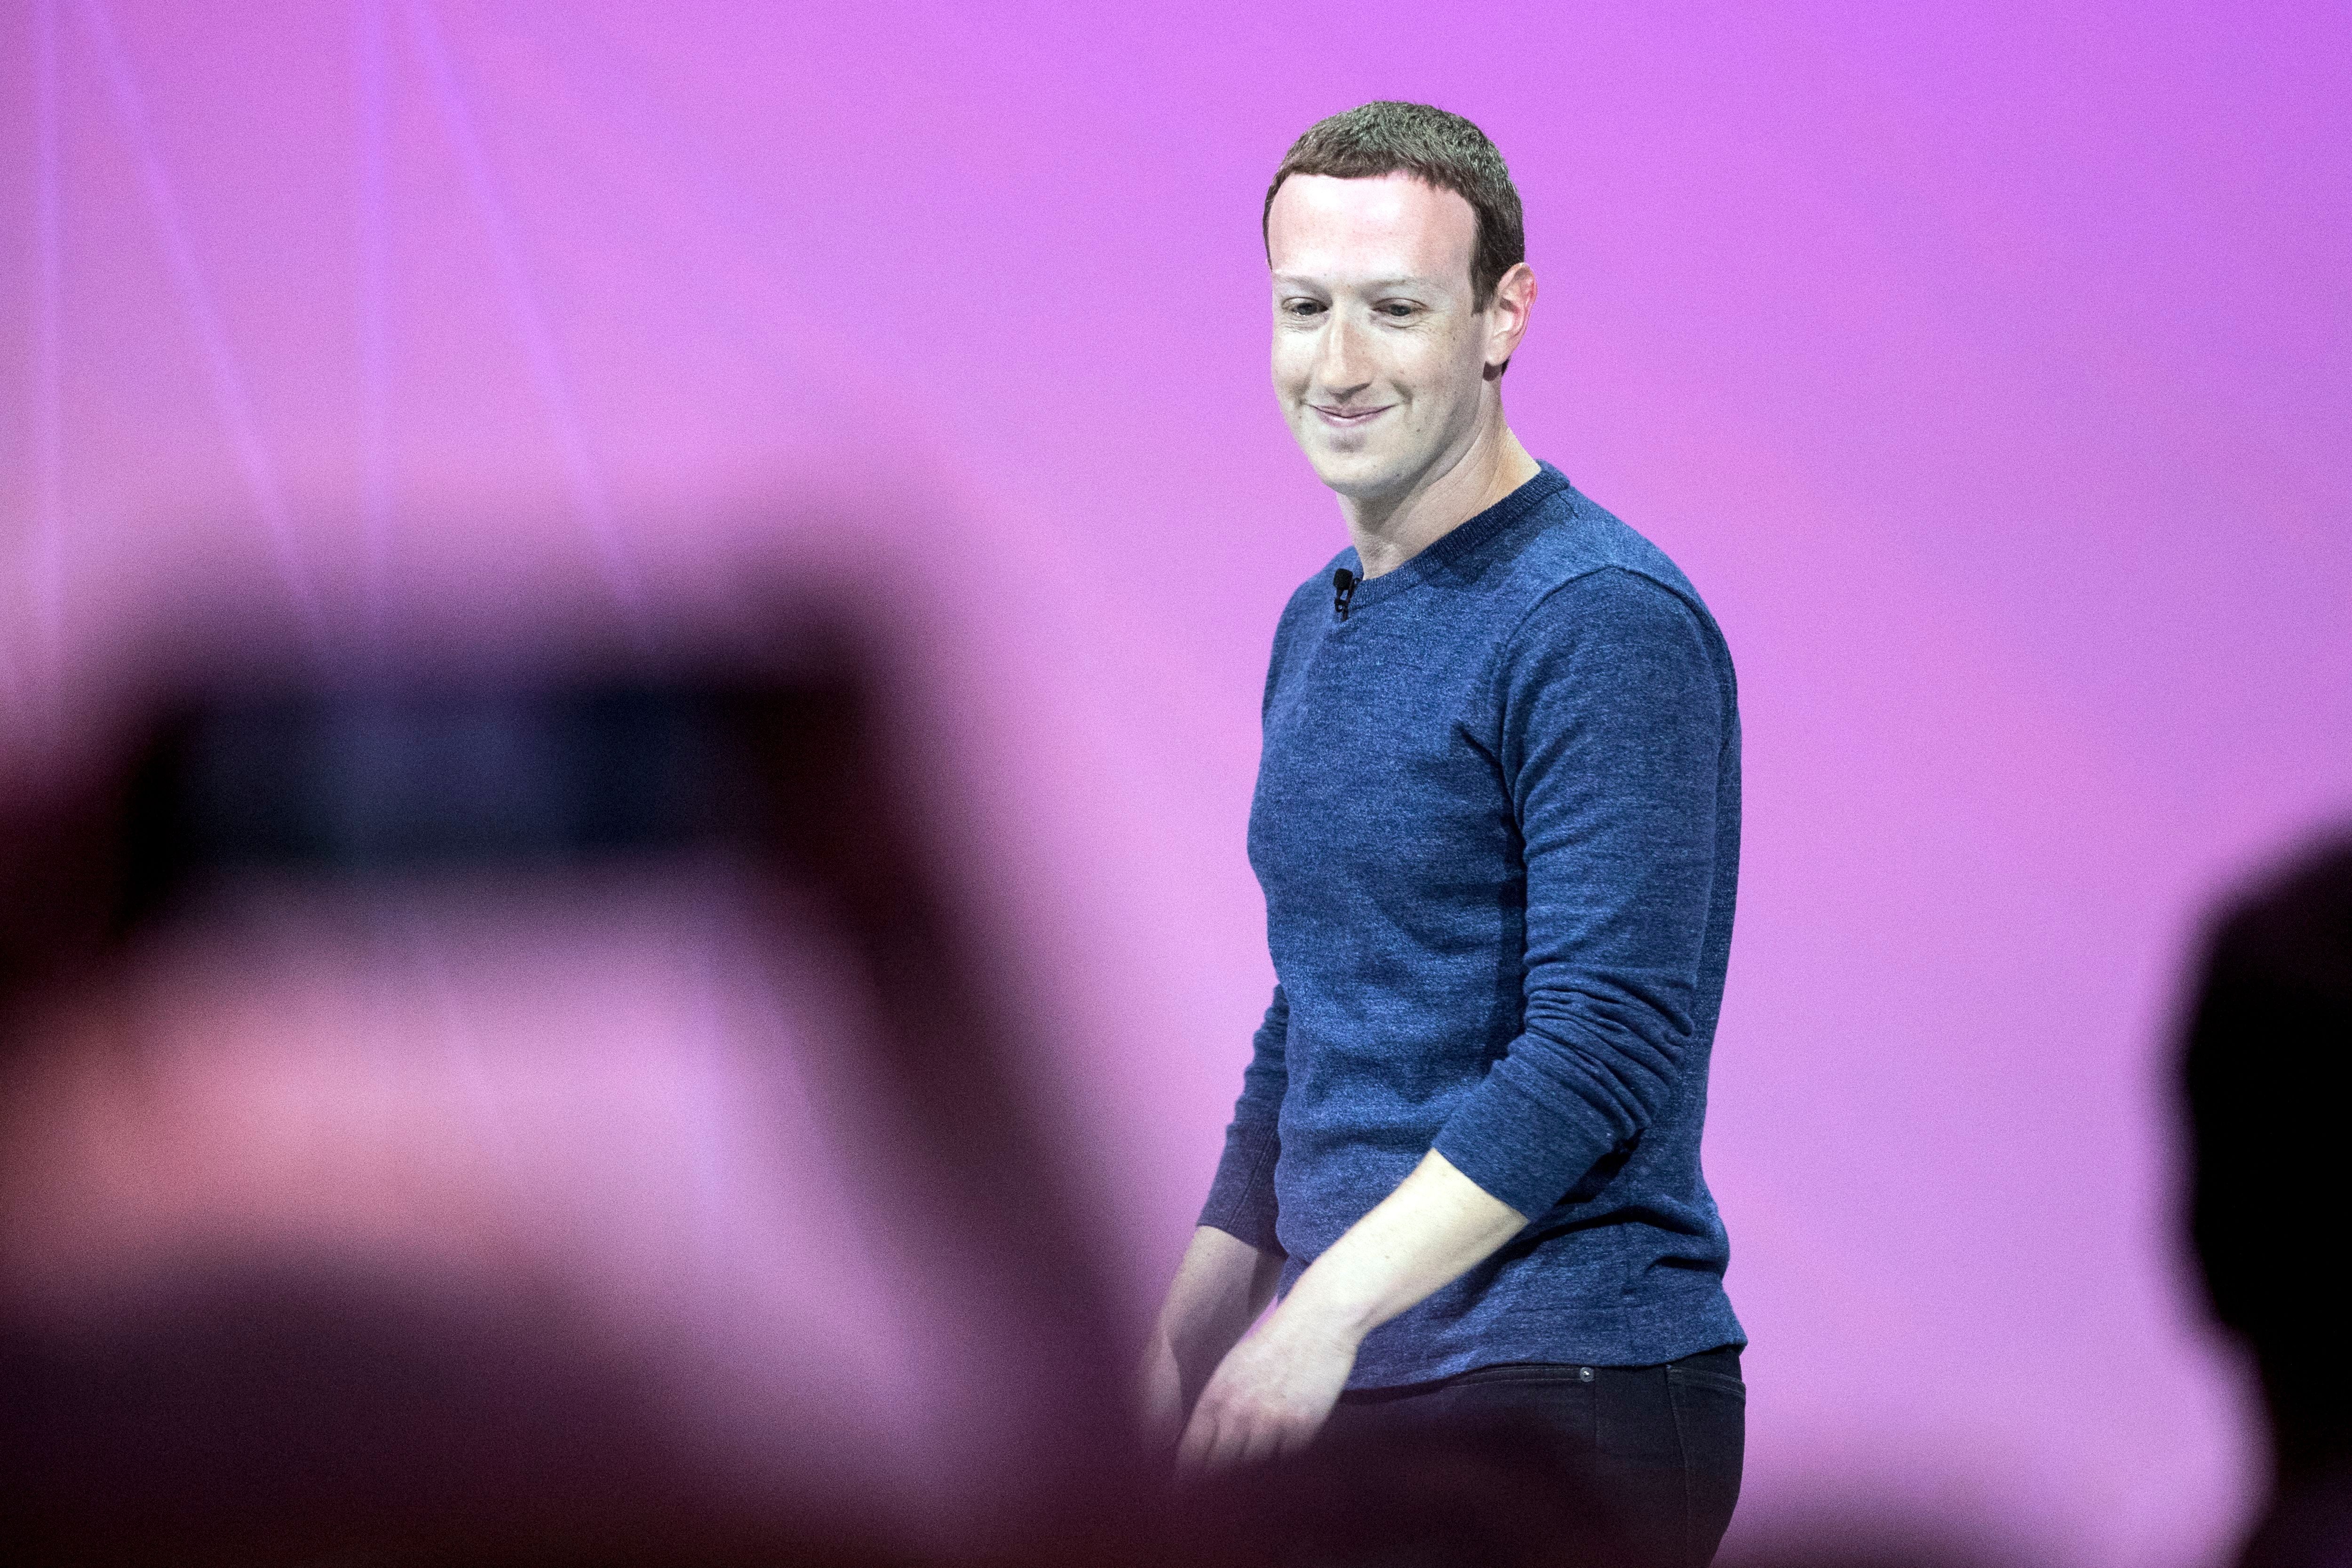 Mark ZuckerbergVivaTech fair in Paris, France - 24 May 2018Facebook CEO Mark Zuckerberg arrives on stage during the VivaTech fair in Paris, France, 24 May 2018. The annual commercial convention runs from the 24 to 26 May.